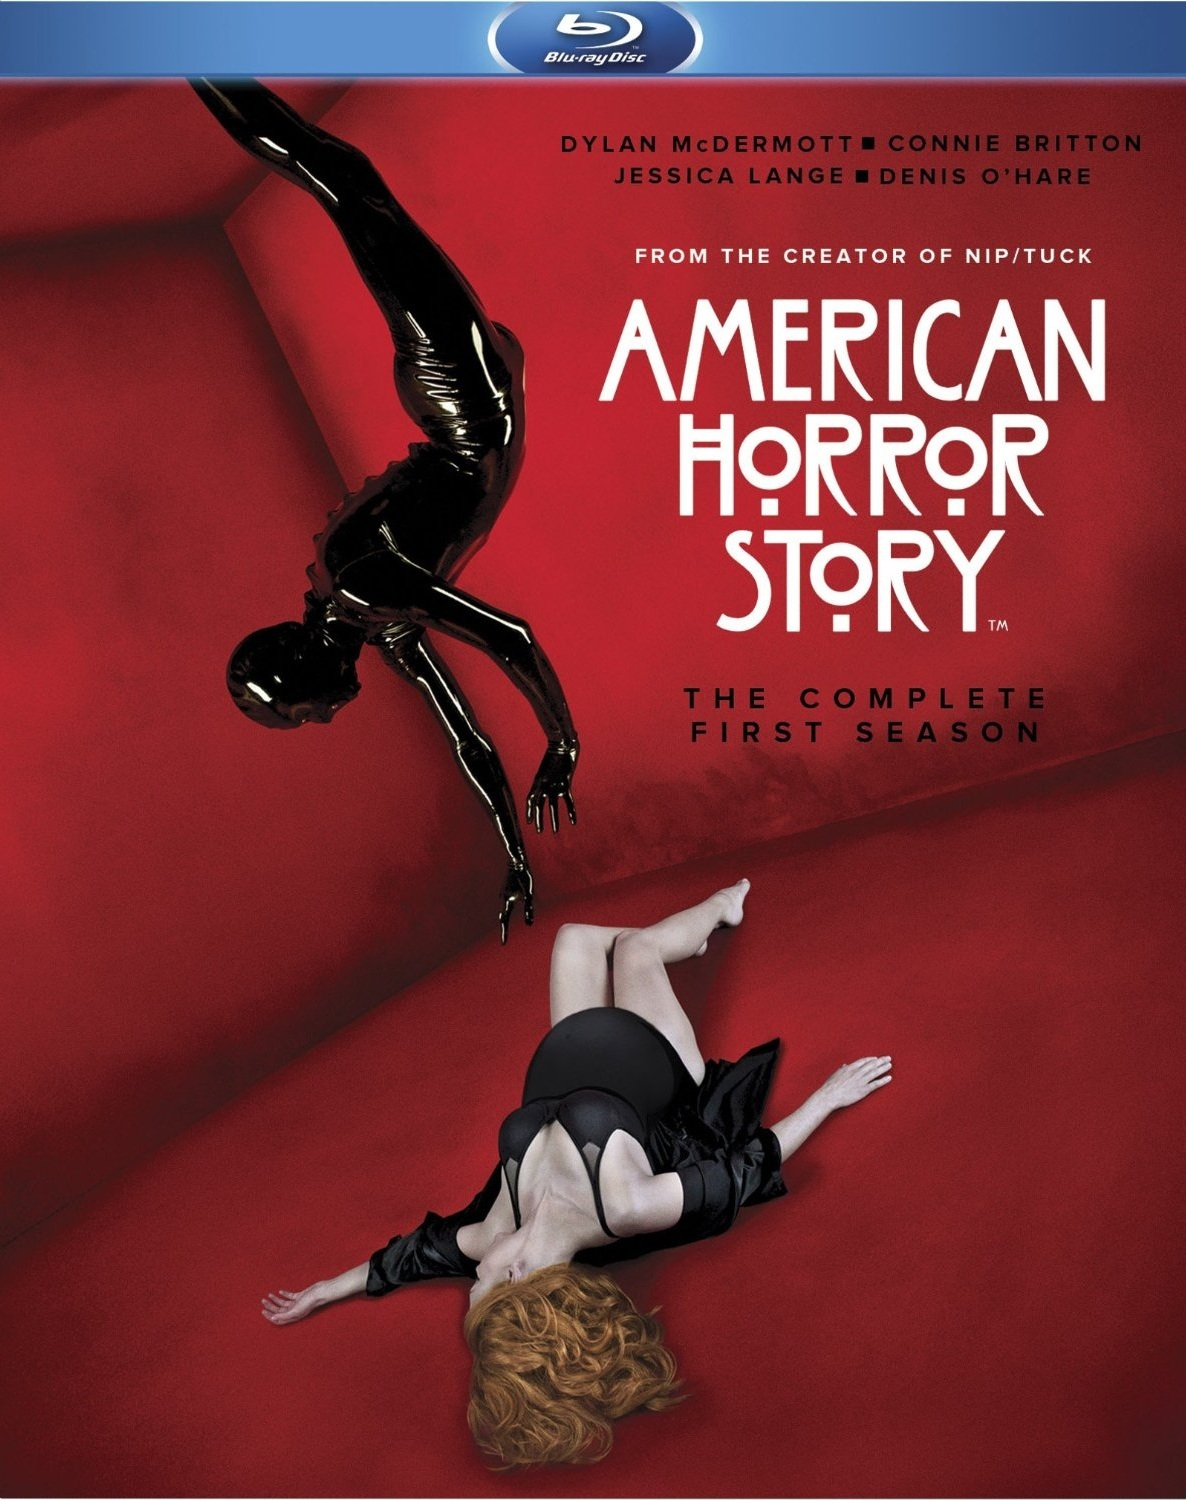 American Horror Story: The Complete First Season/Blu-ray